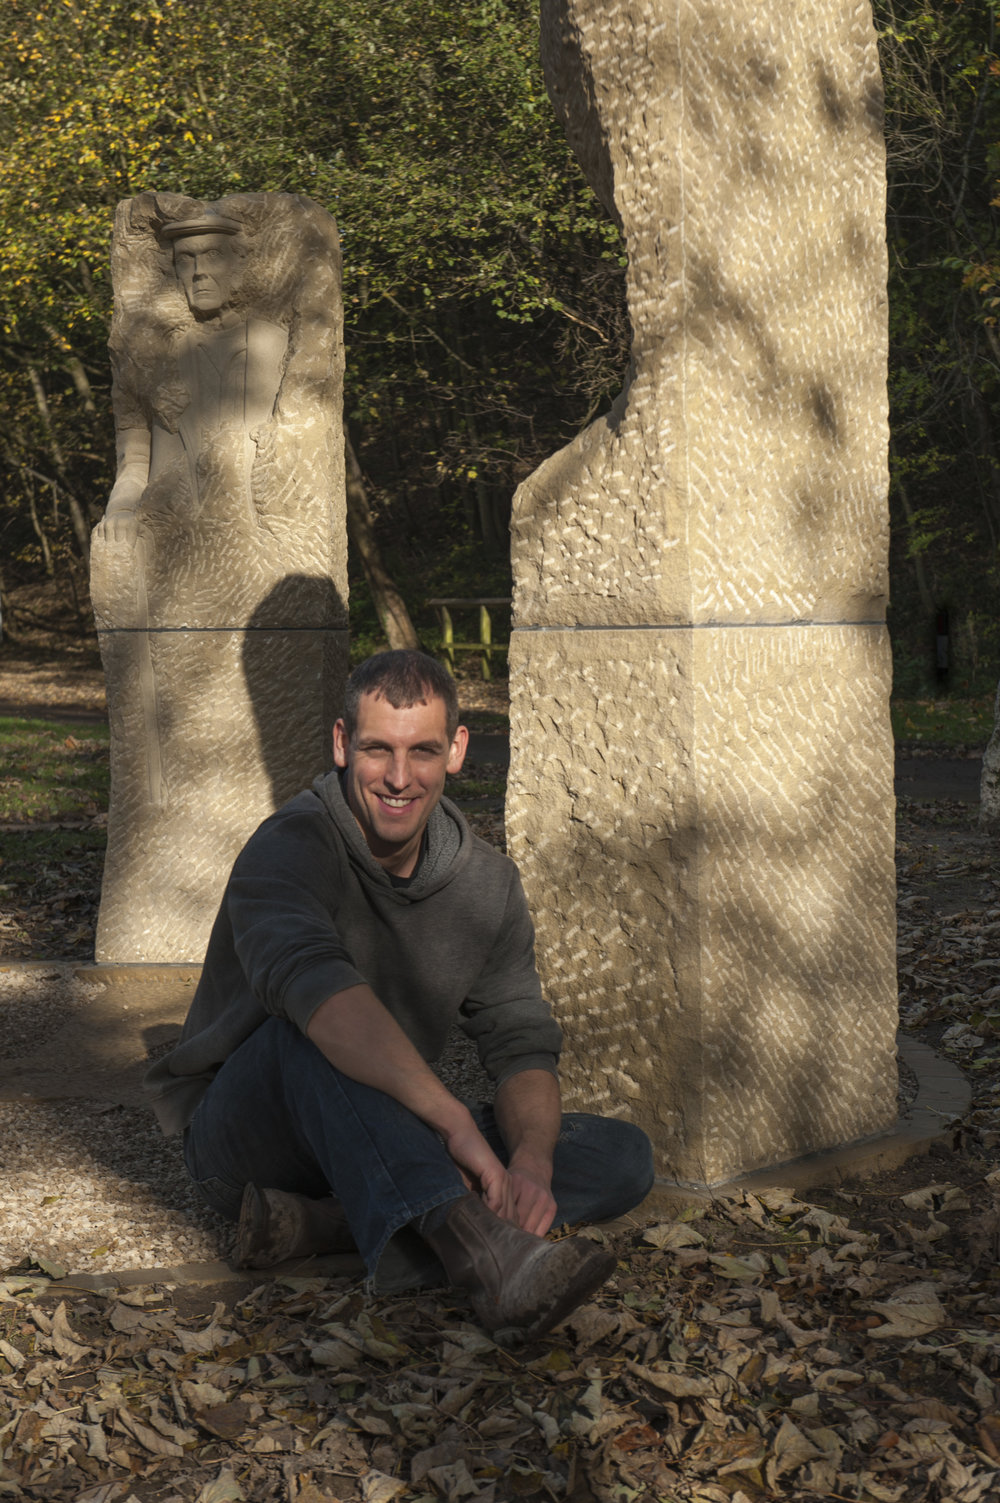 Joseph with Pillars Past- photo by Paul Harris